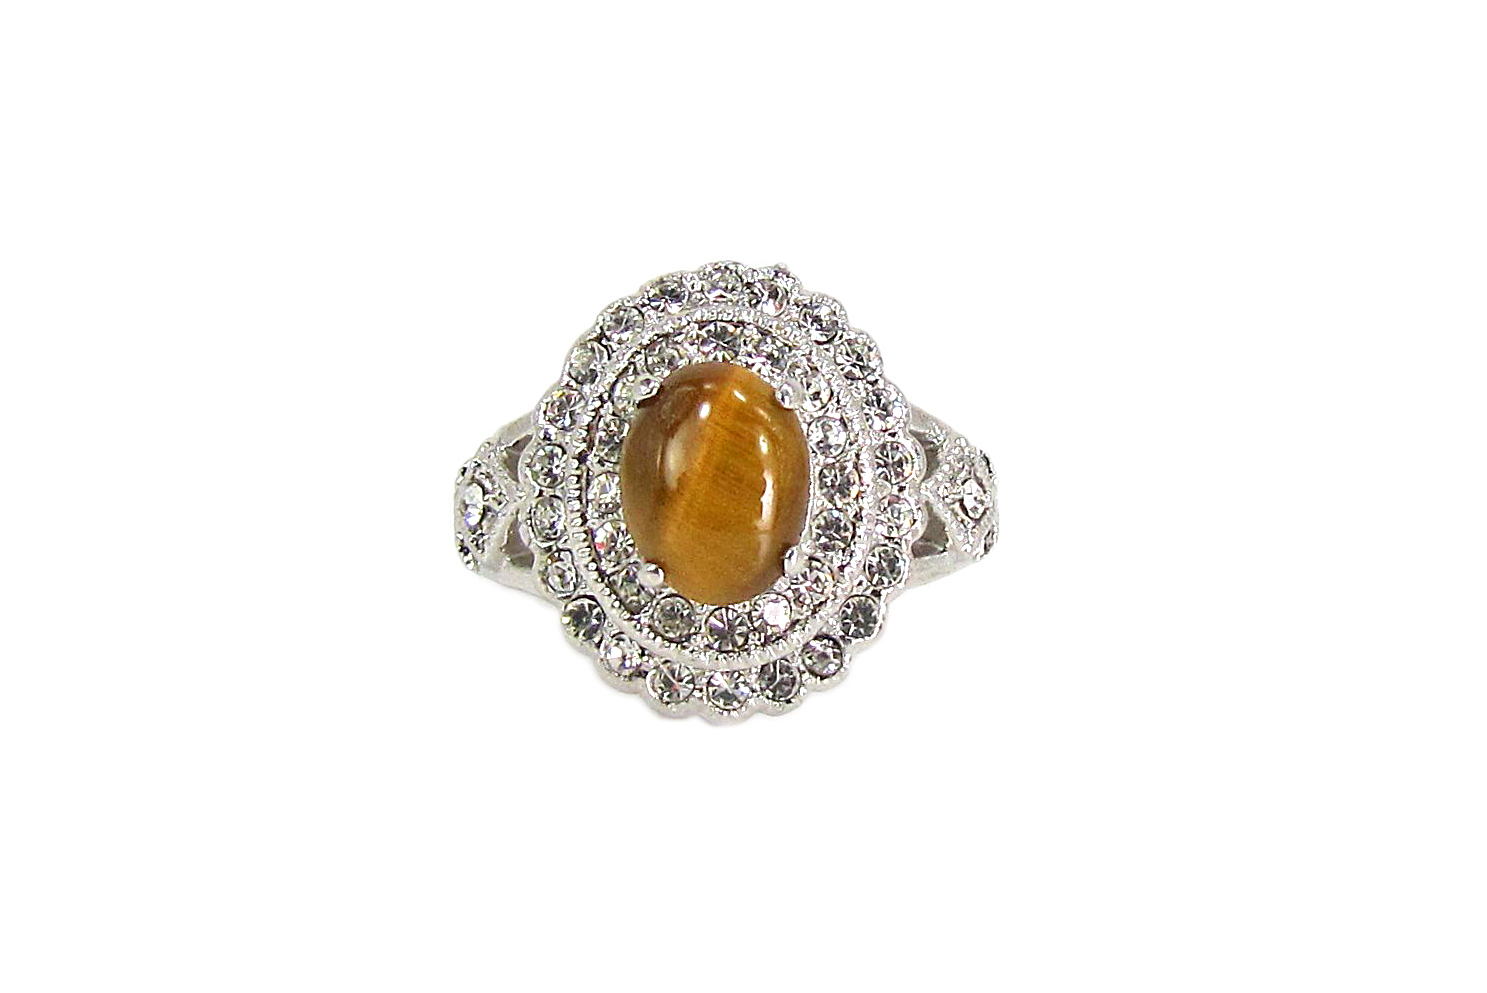 ring with brown banded precious stone